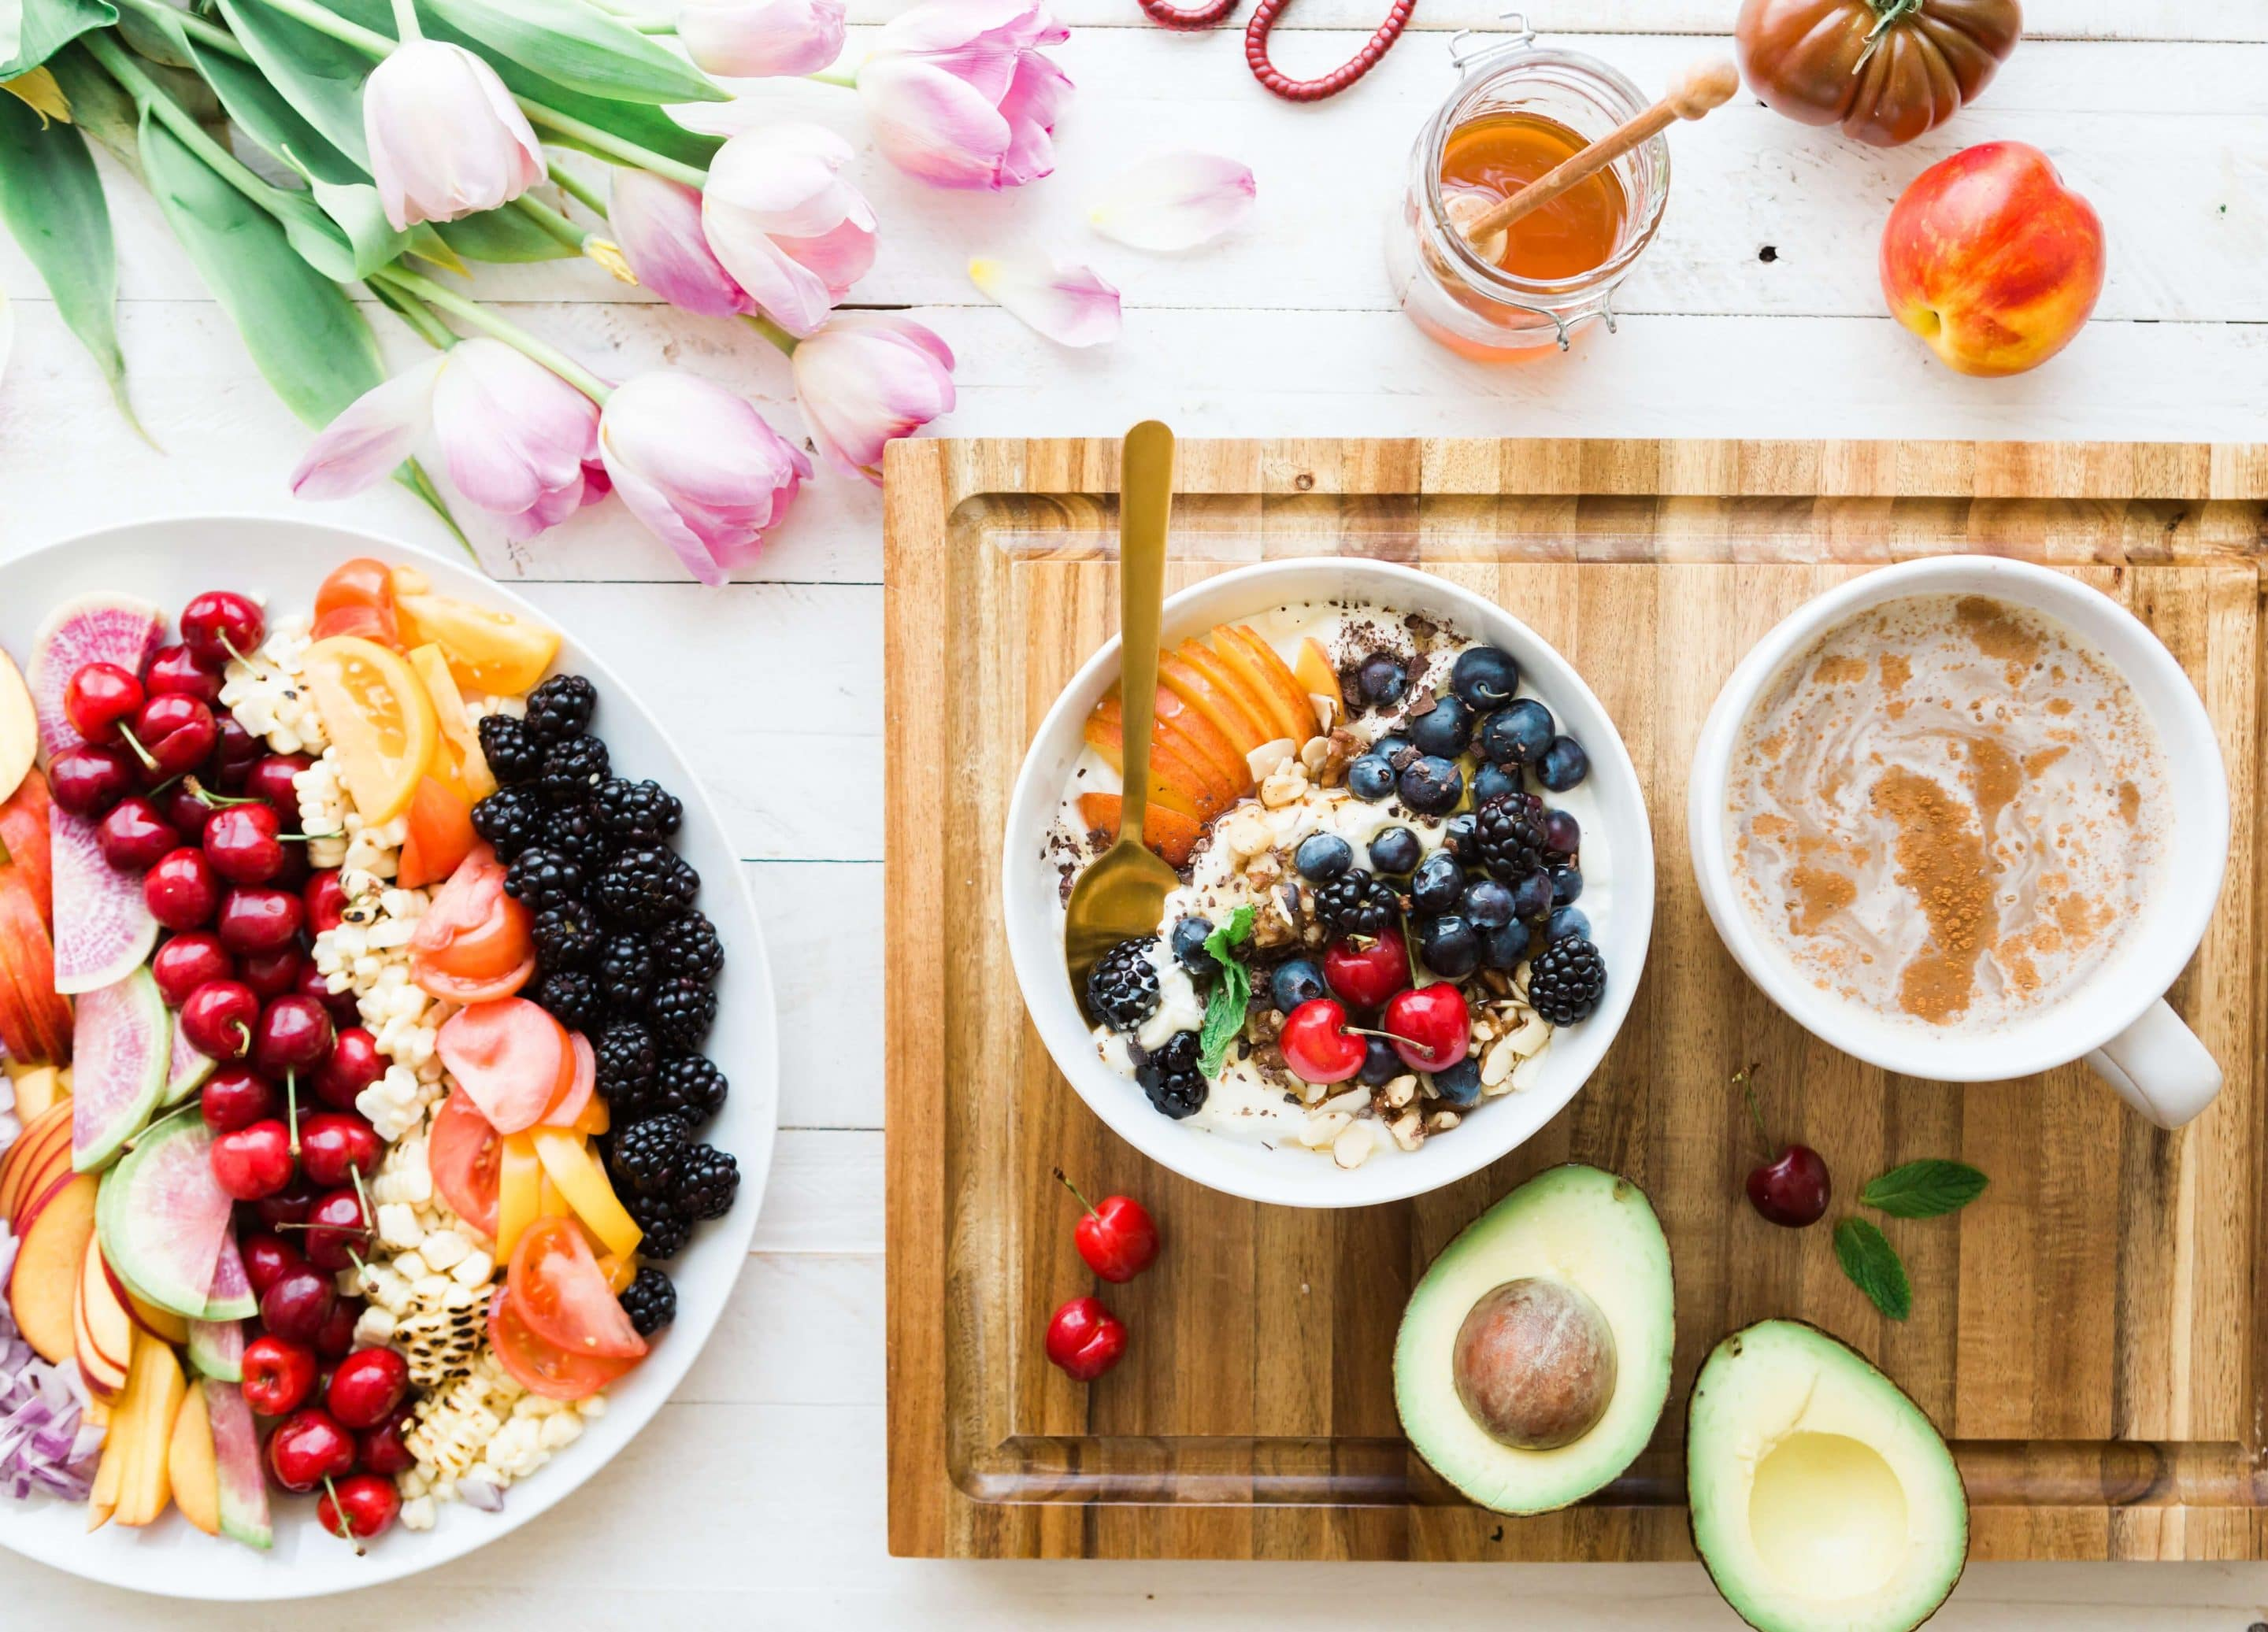 5 Ways to Lose Stress Weight Without Dieting